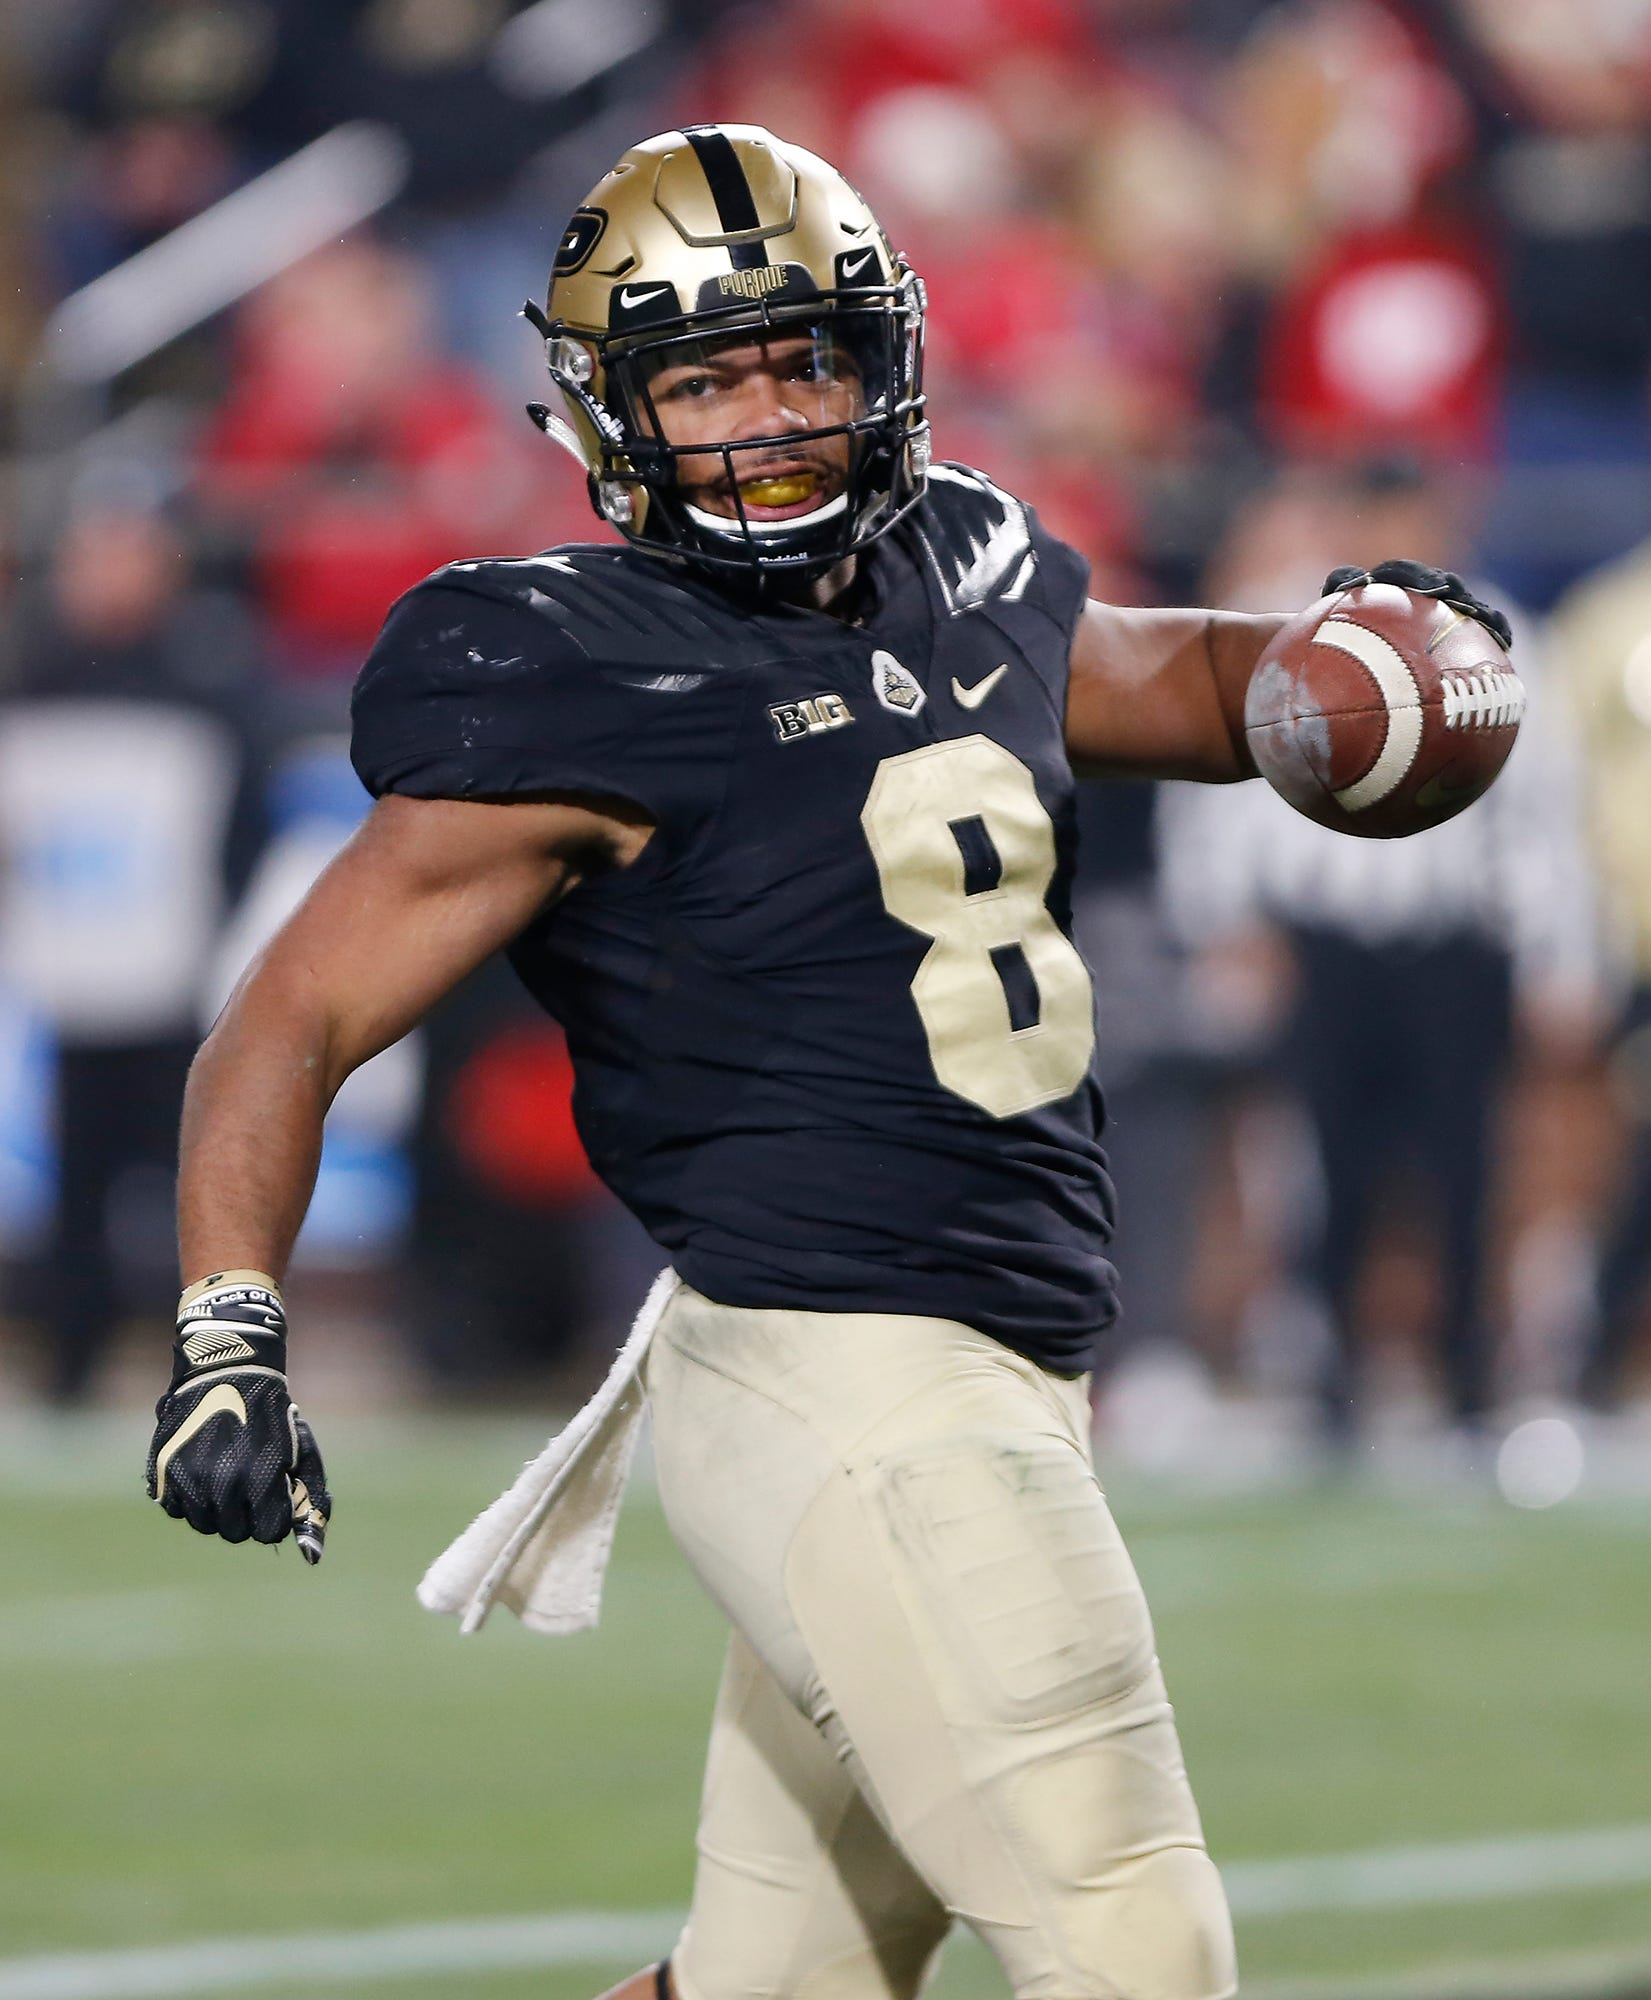 Purdue running back Markell Jones struts into the end zone with 4:08 to play in the third quarter.